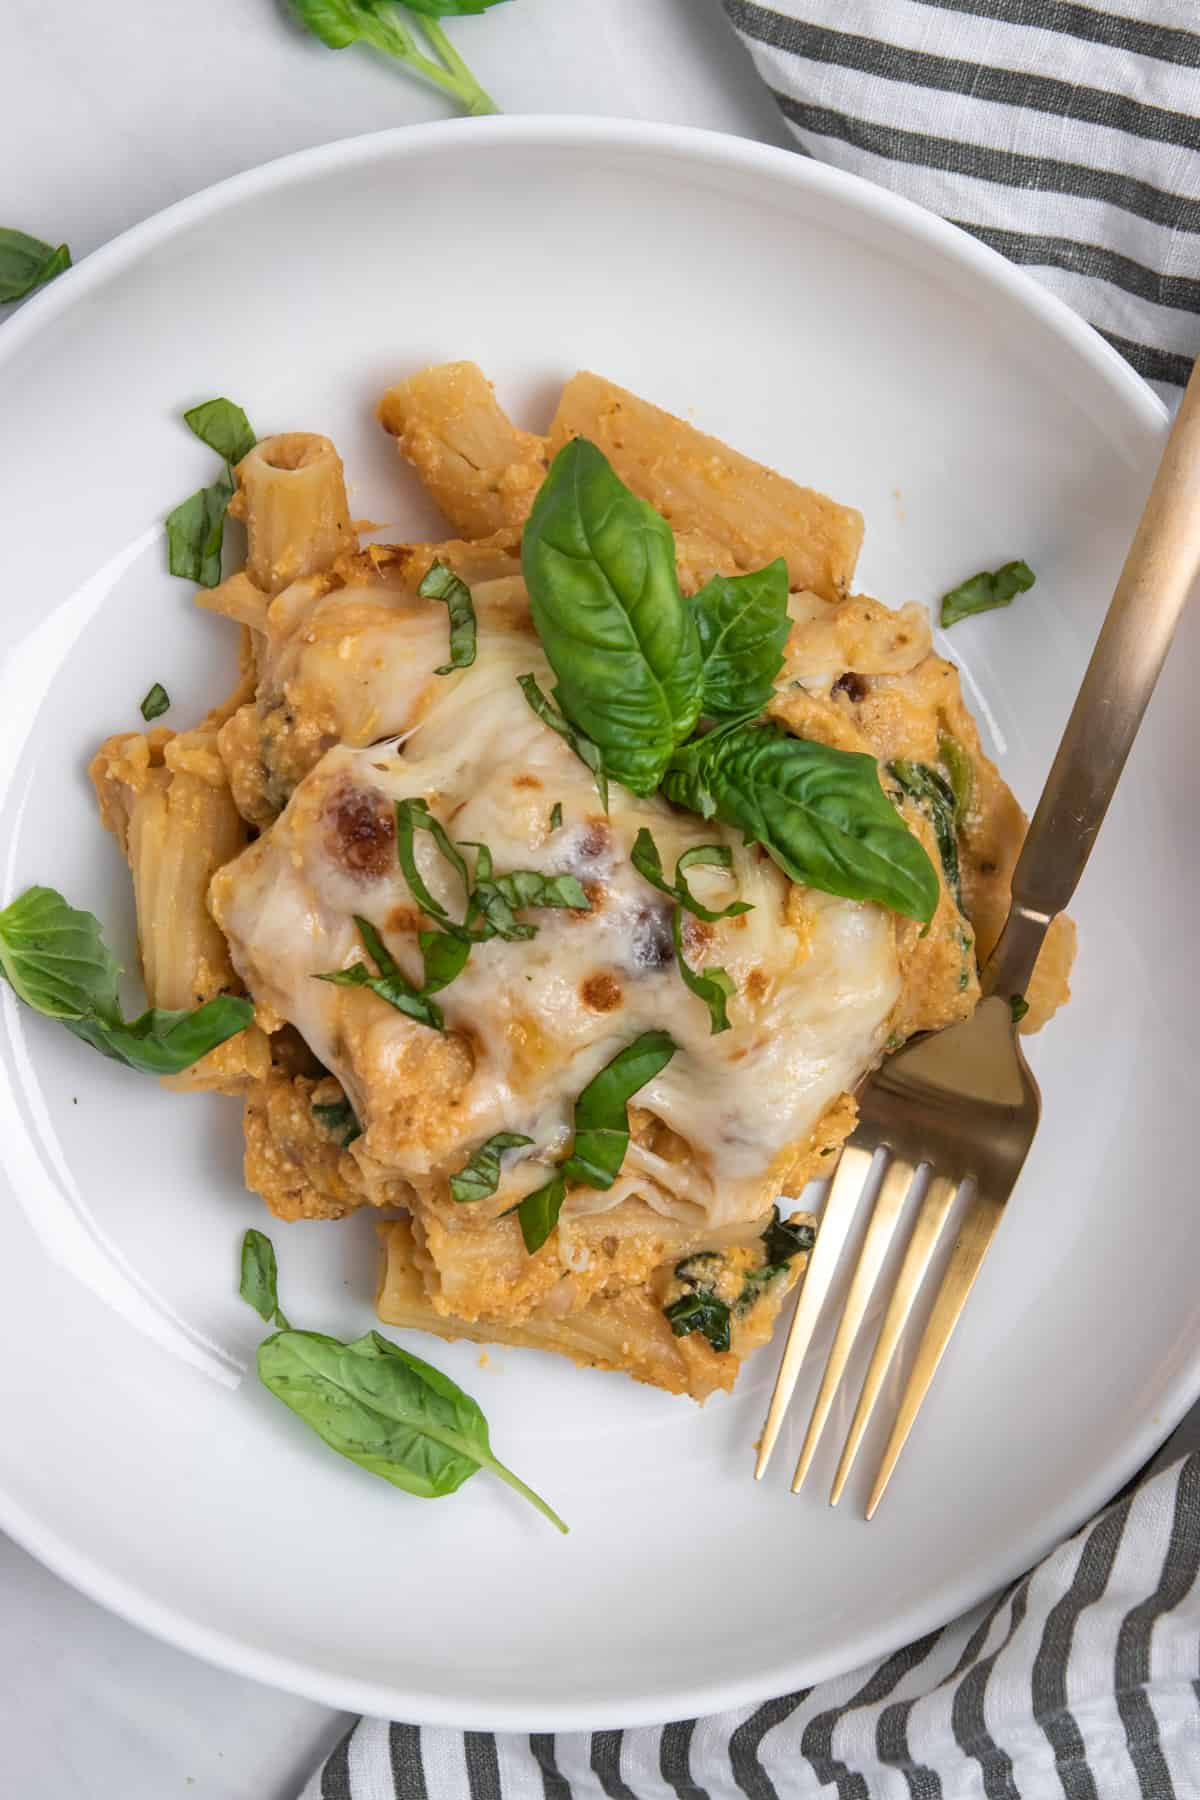 Overhead view of pumpkin pasta bake on white plate with fork and napkin.